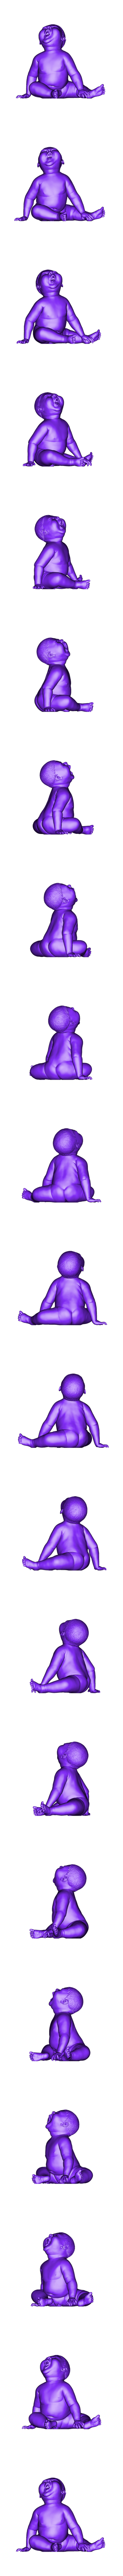 angry_baby_v02.stl Download OBJ file Angry baby improved version • 3D printing design, udograf